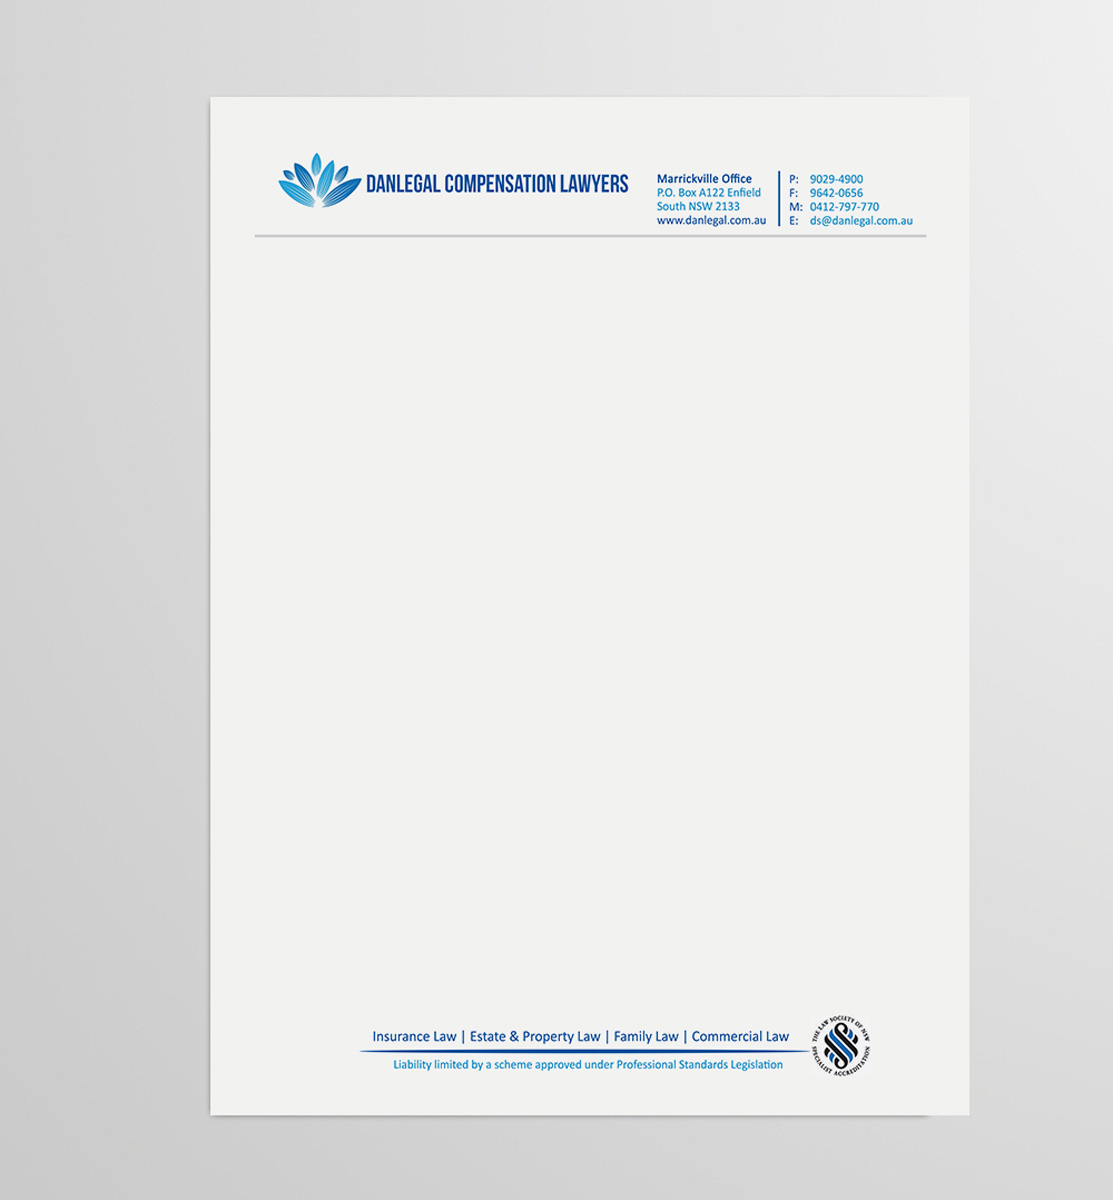 Elegant Playful Health Poster Design For A Company By: Elegant, Playful, It Professional Letterhead Design For A